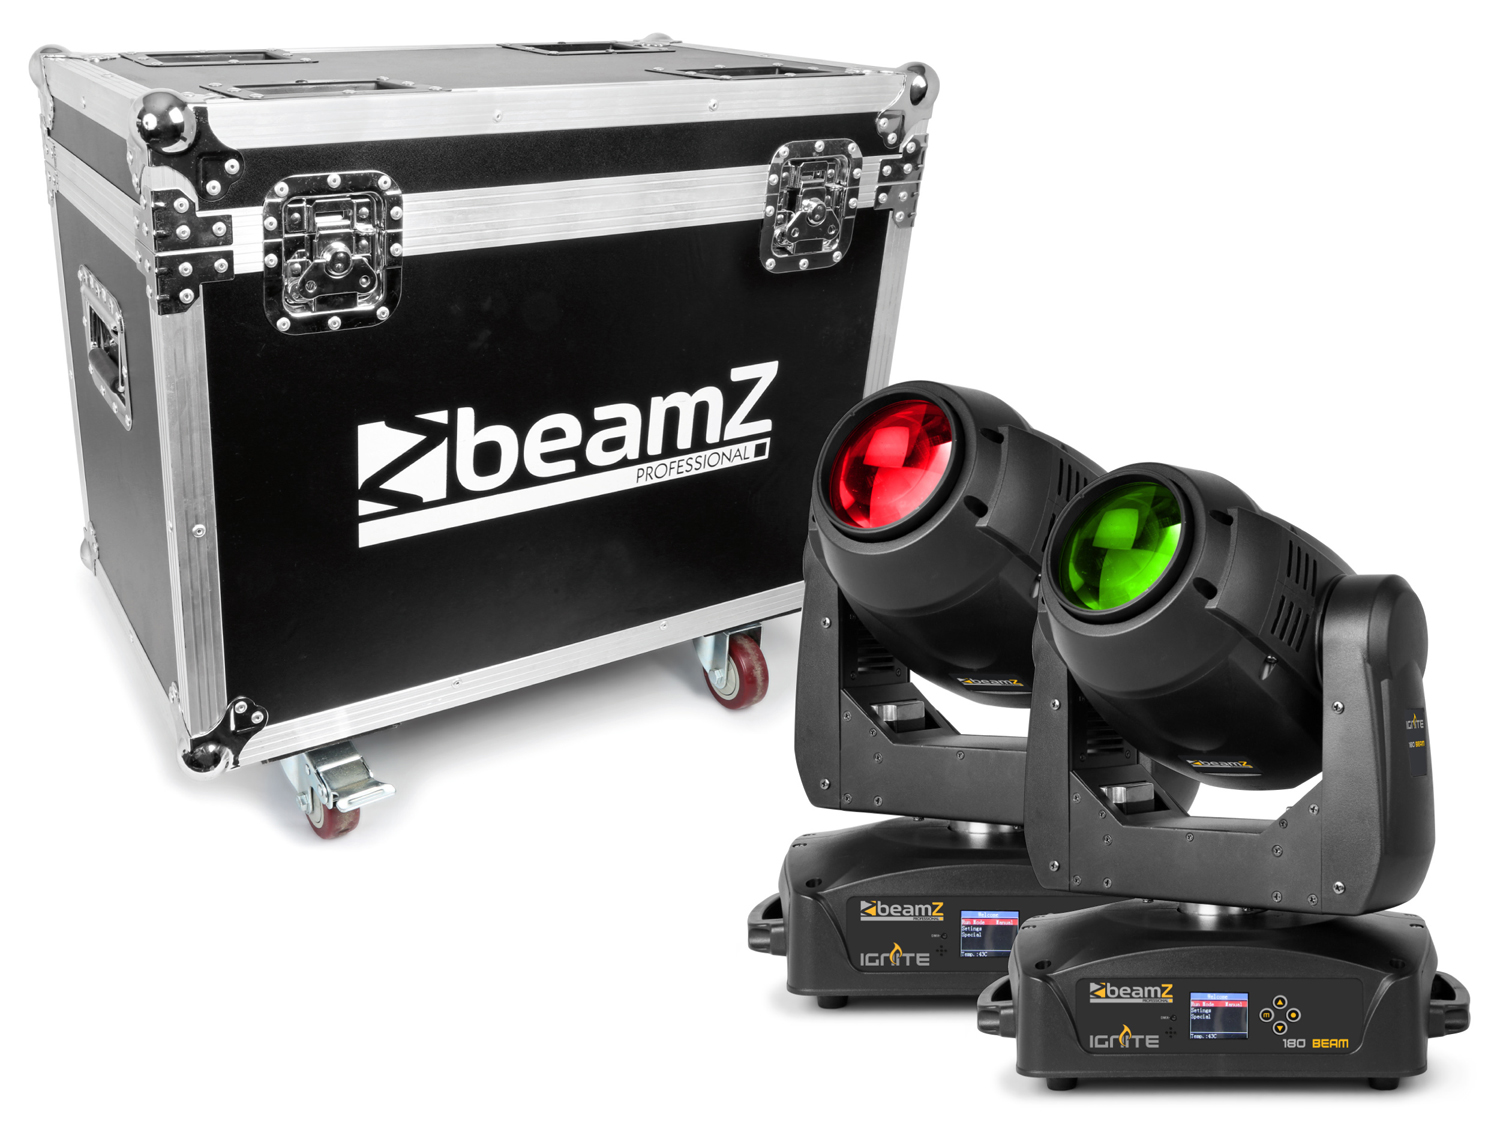 BeamZ Professional IGNITE180B LED Beam Moving Head 2 pieces in Flightcase